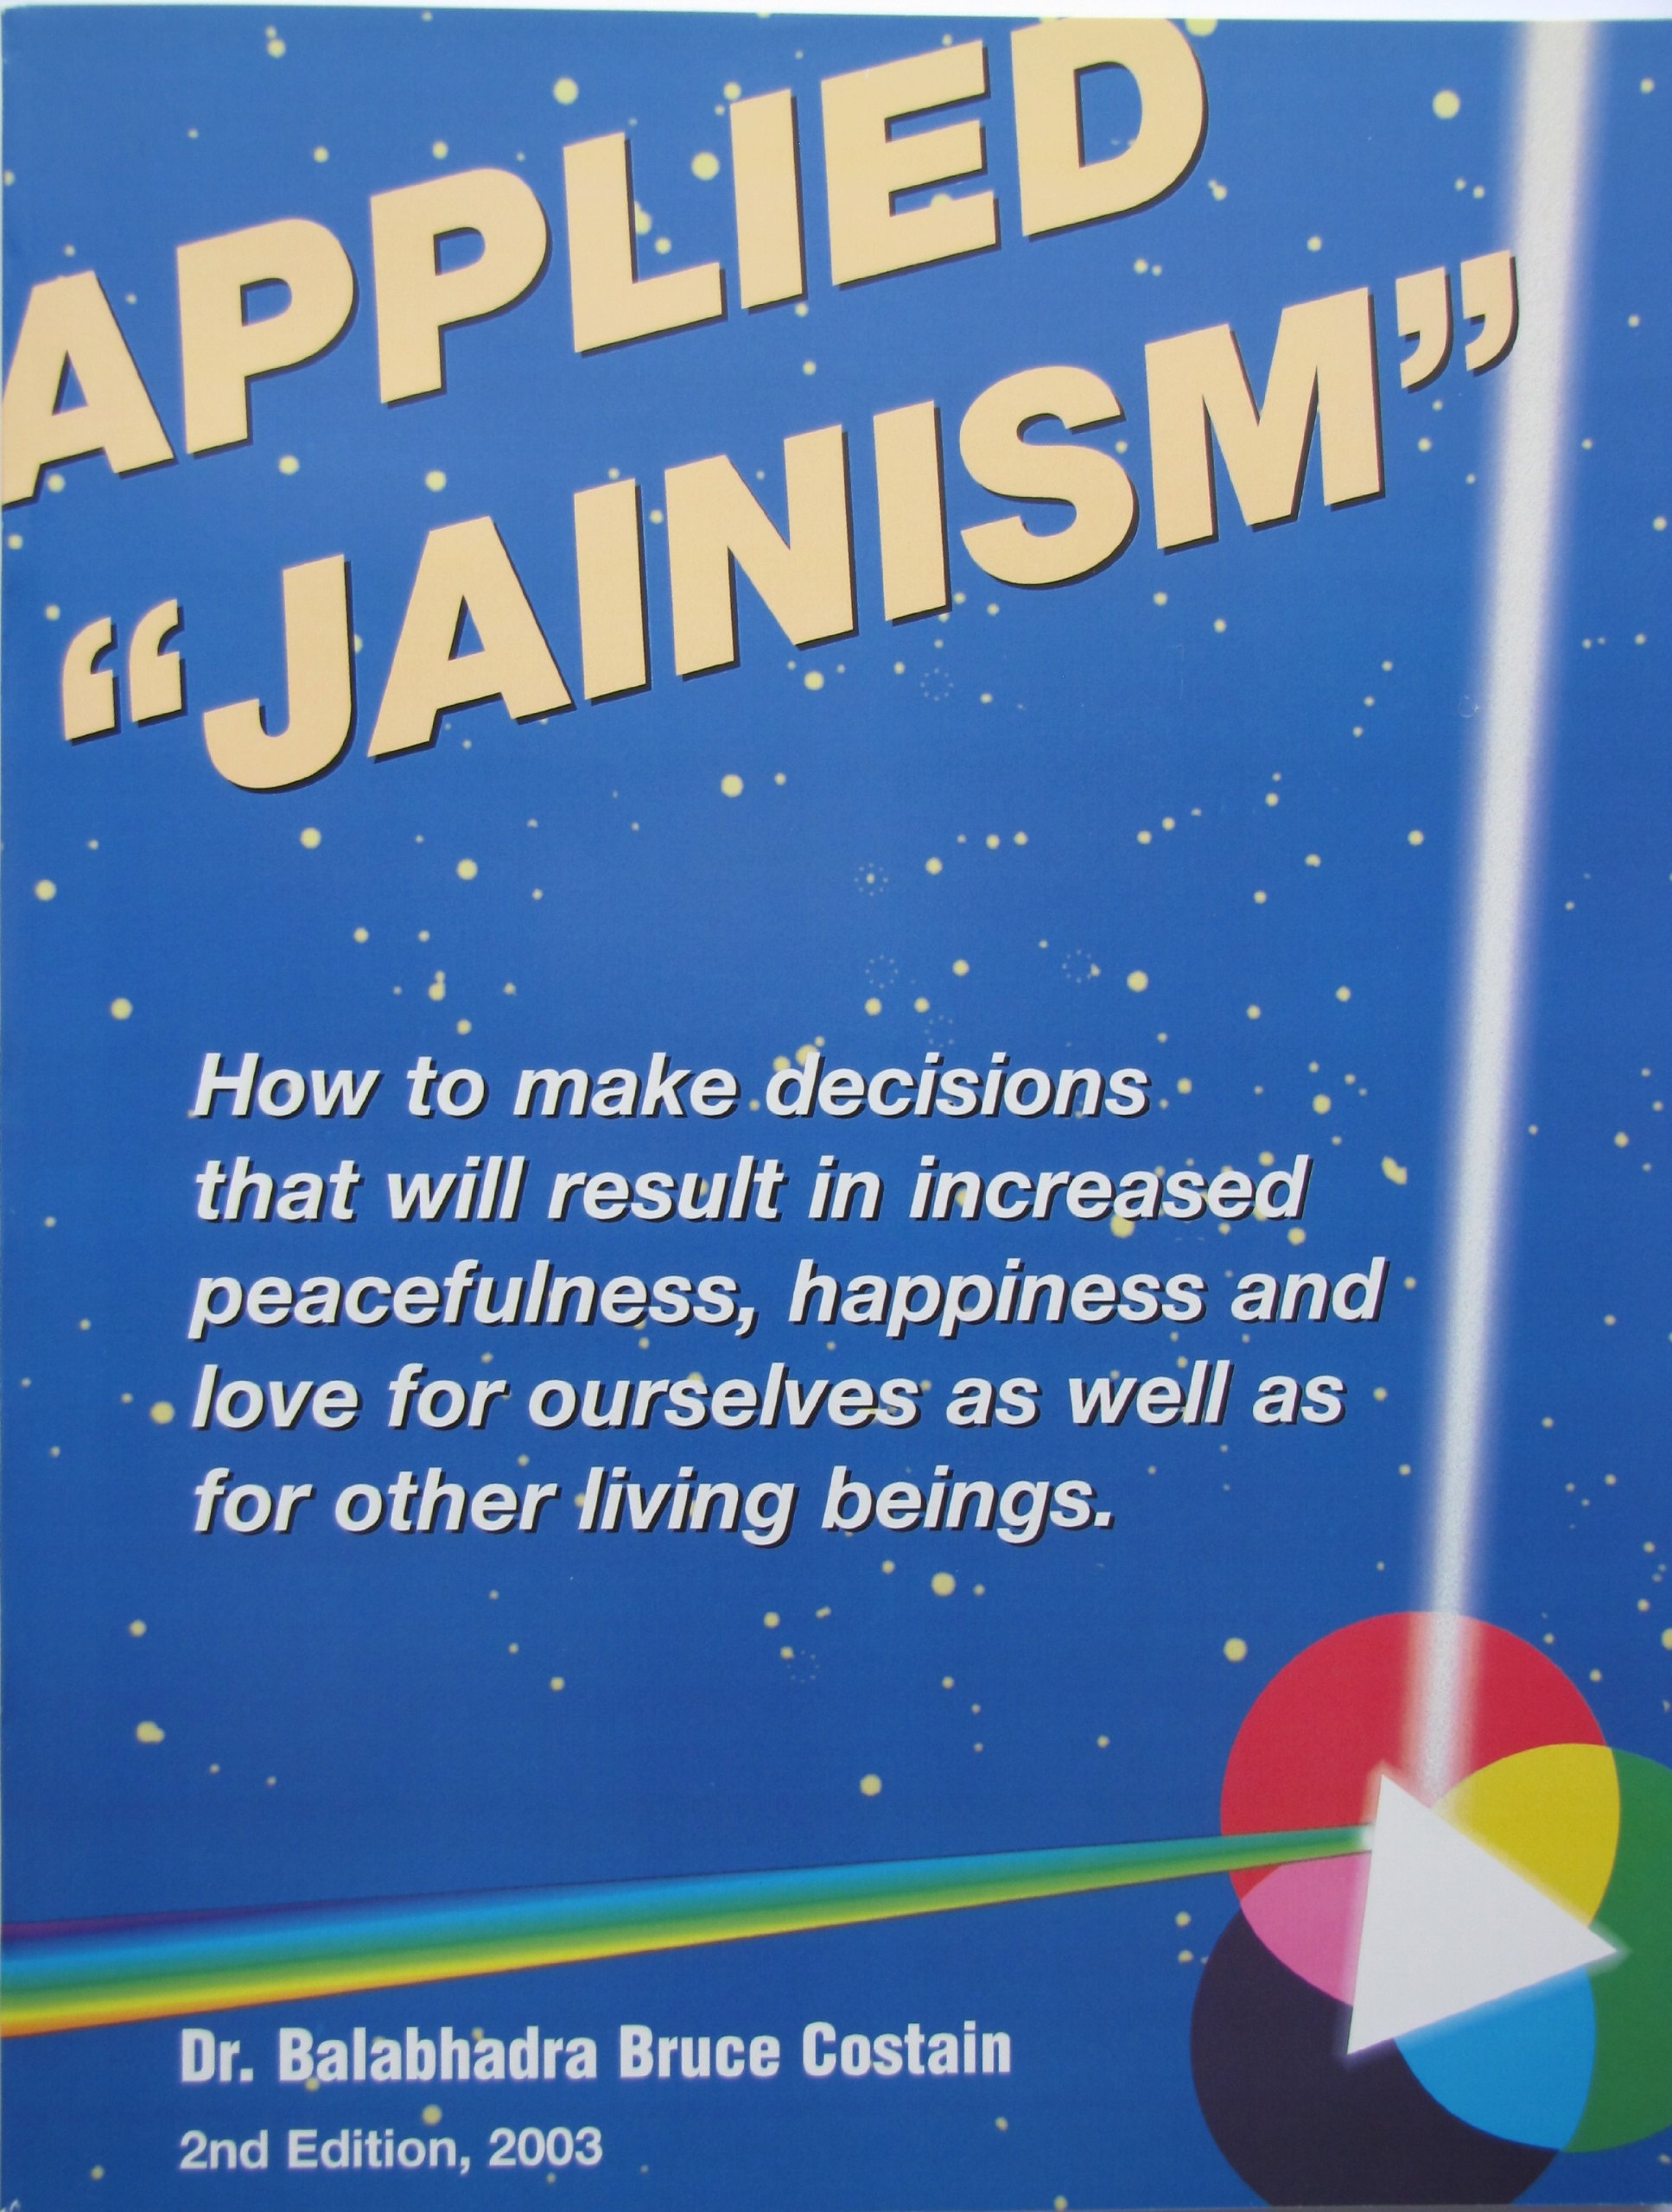 """Applied """"Jainism"""" : How to Make Decisions That Will Result in Increased Peacefulness, Happiness and Love for Ourselves As Well As for Other Living Beings"""